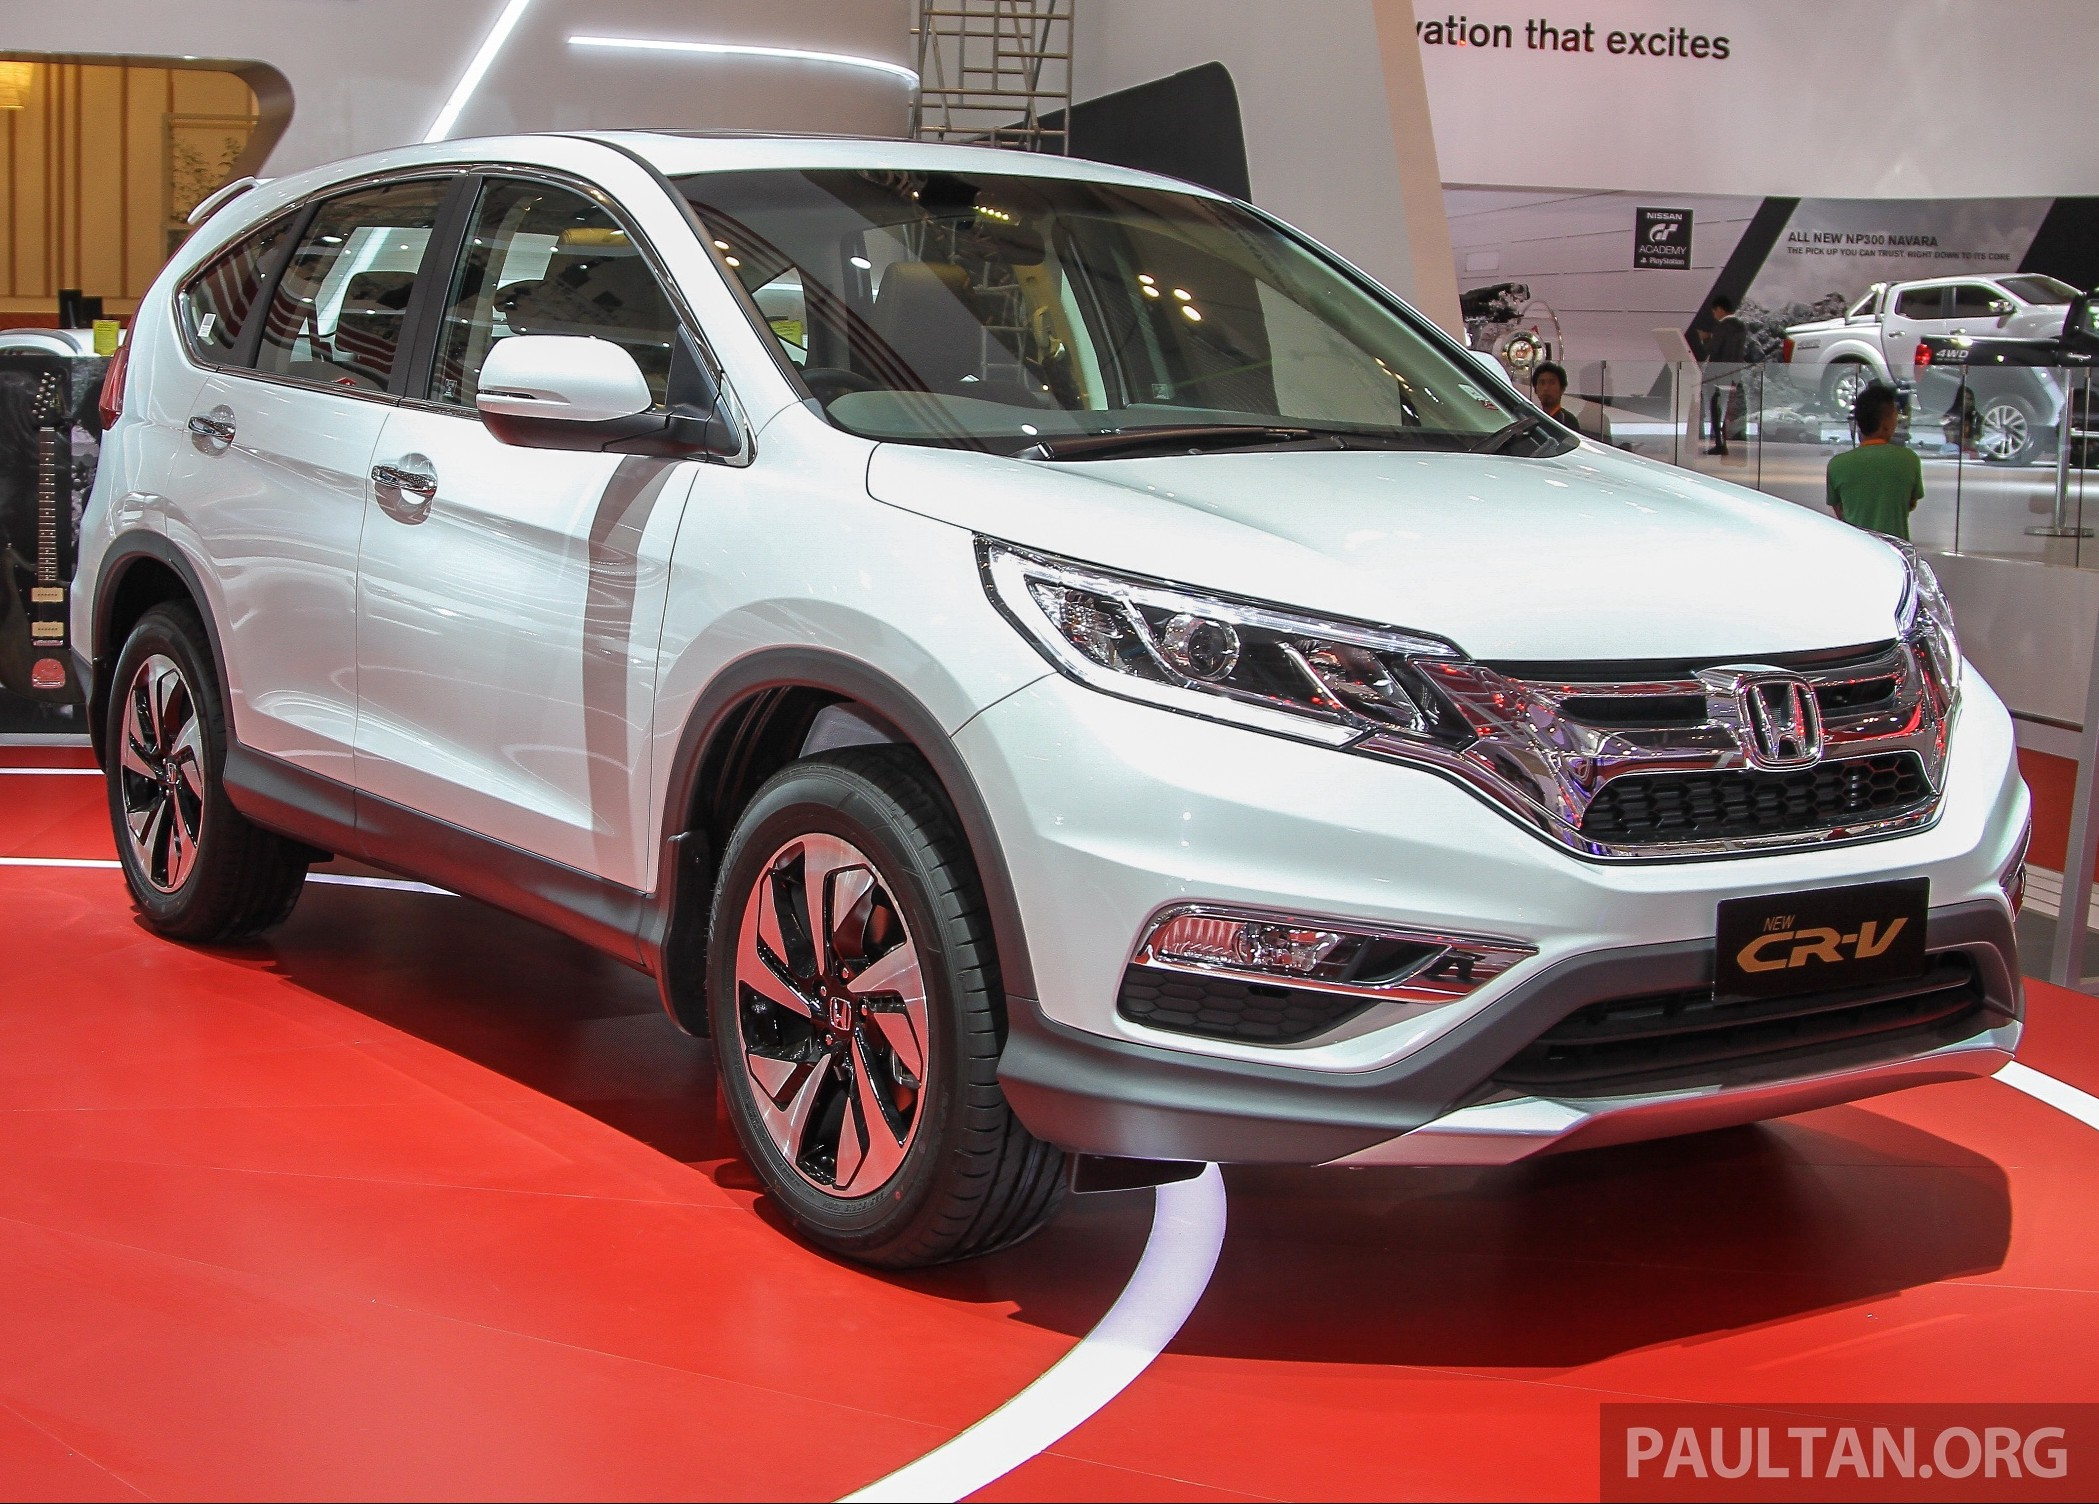 Jd power 2015 malaysia initial quality study honda tops two categories suvs reportedly least problematic